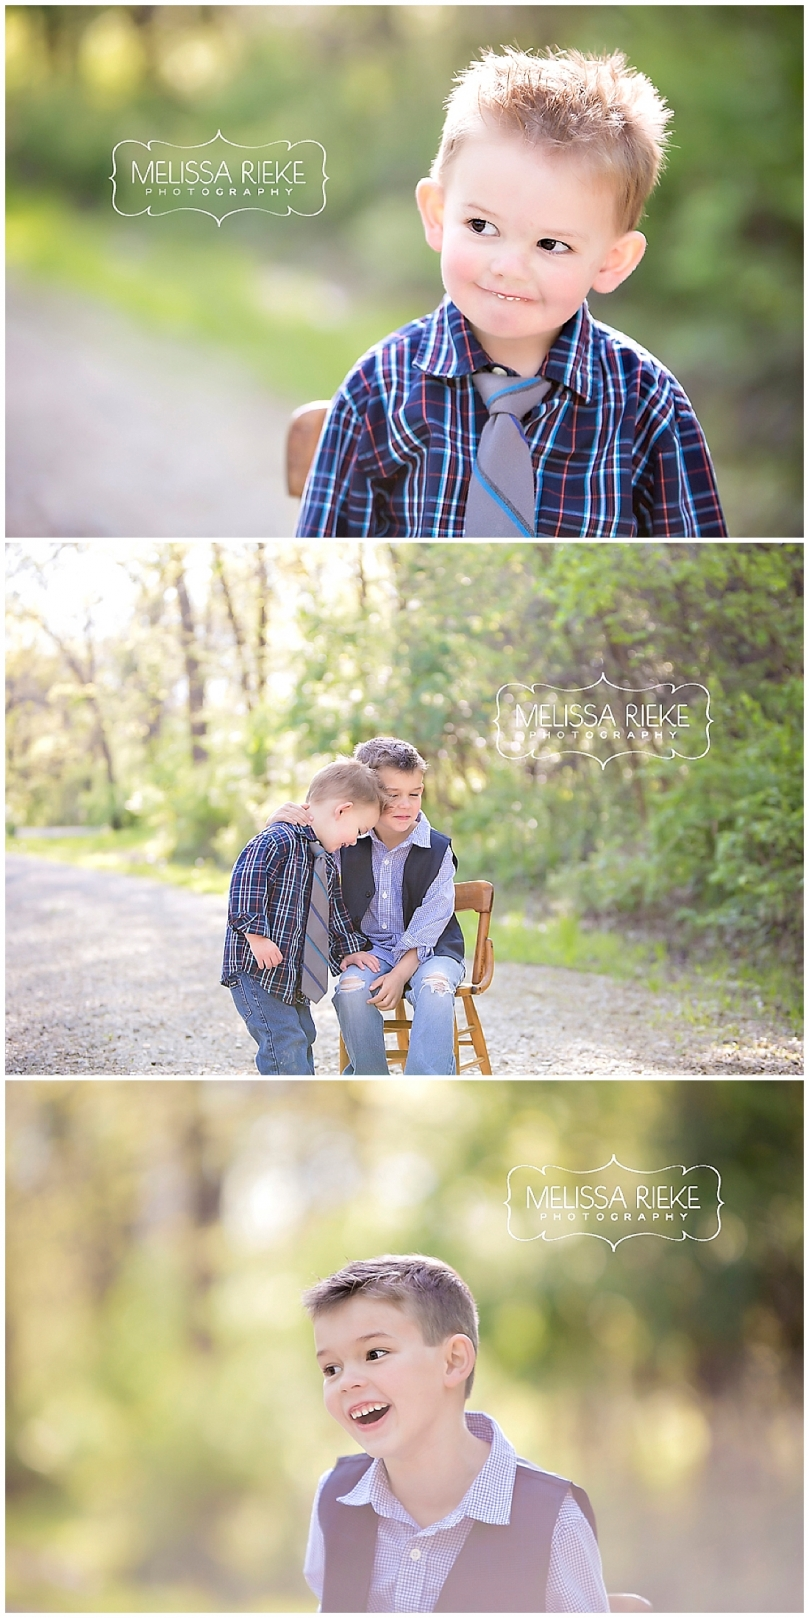 Kansas City Family Photographer | Melissa Rieke Photography